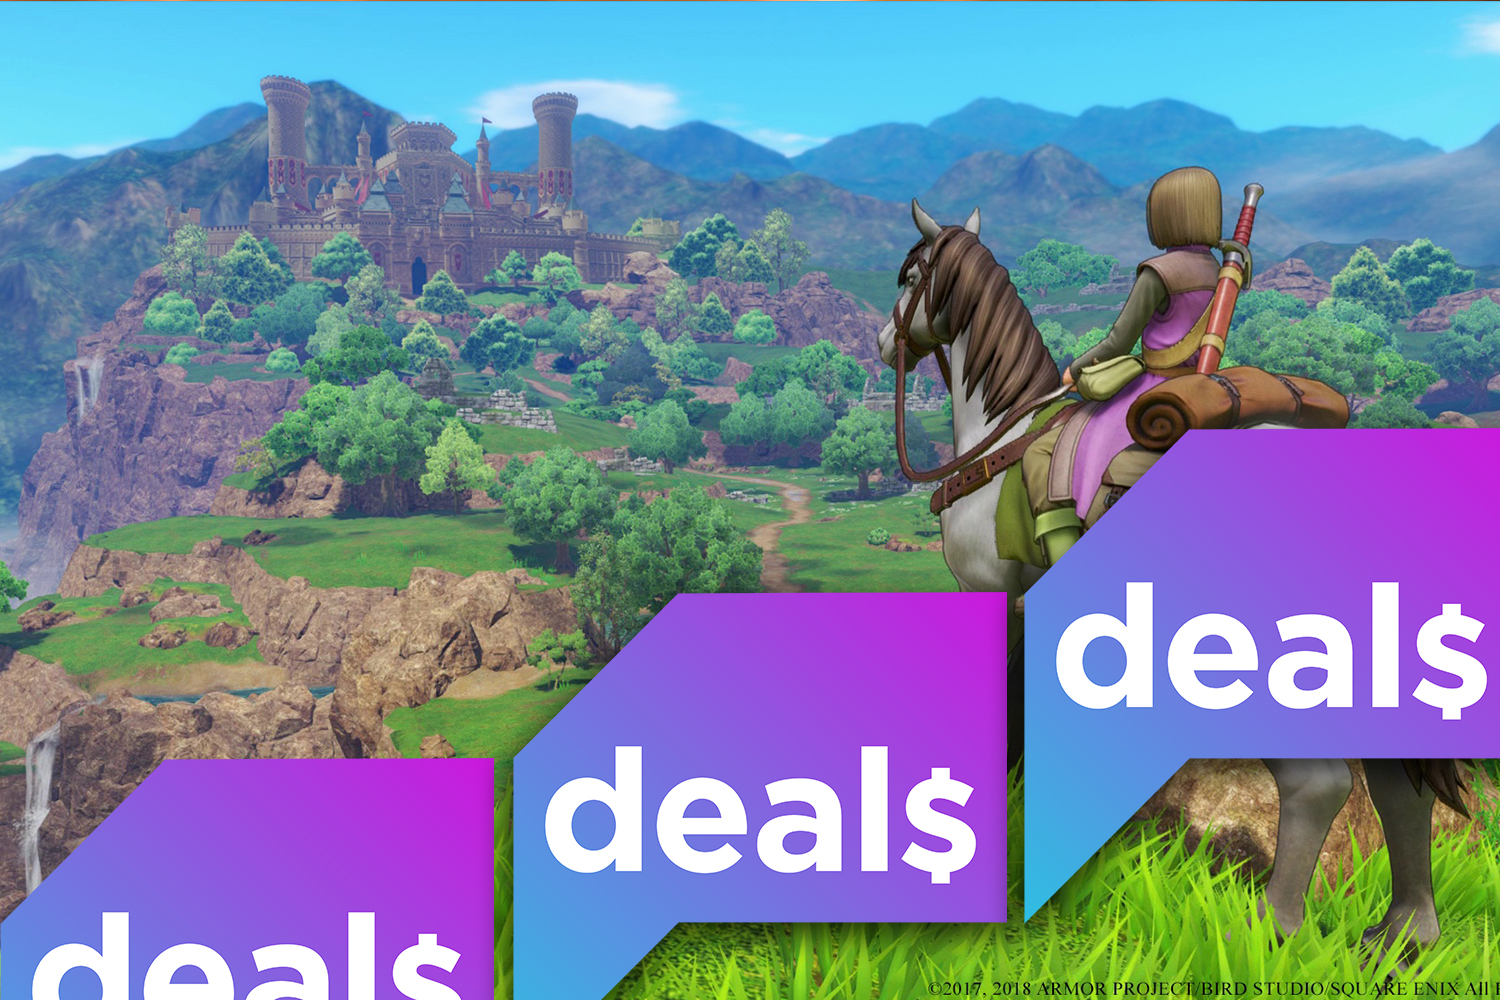 The Polygon Deals logo over a screenshot of a character riding a horse in Dragon Quest 11